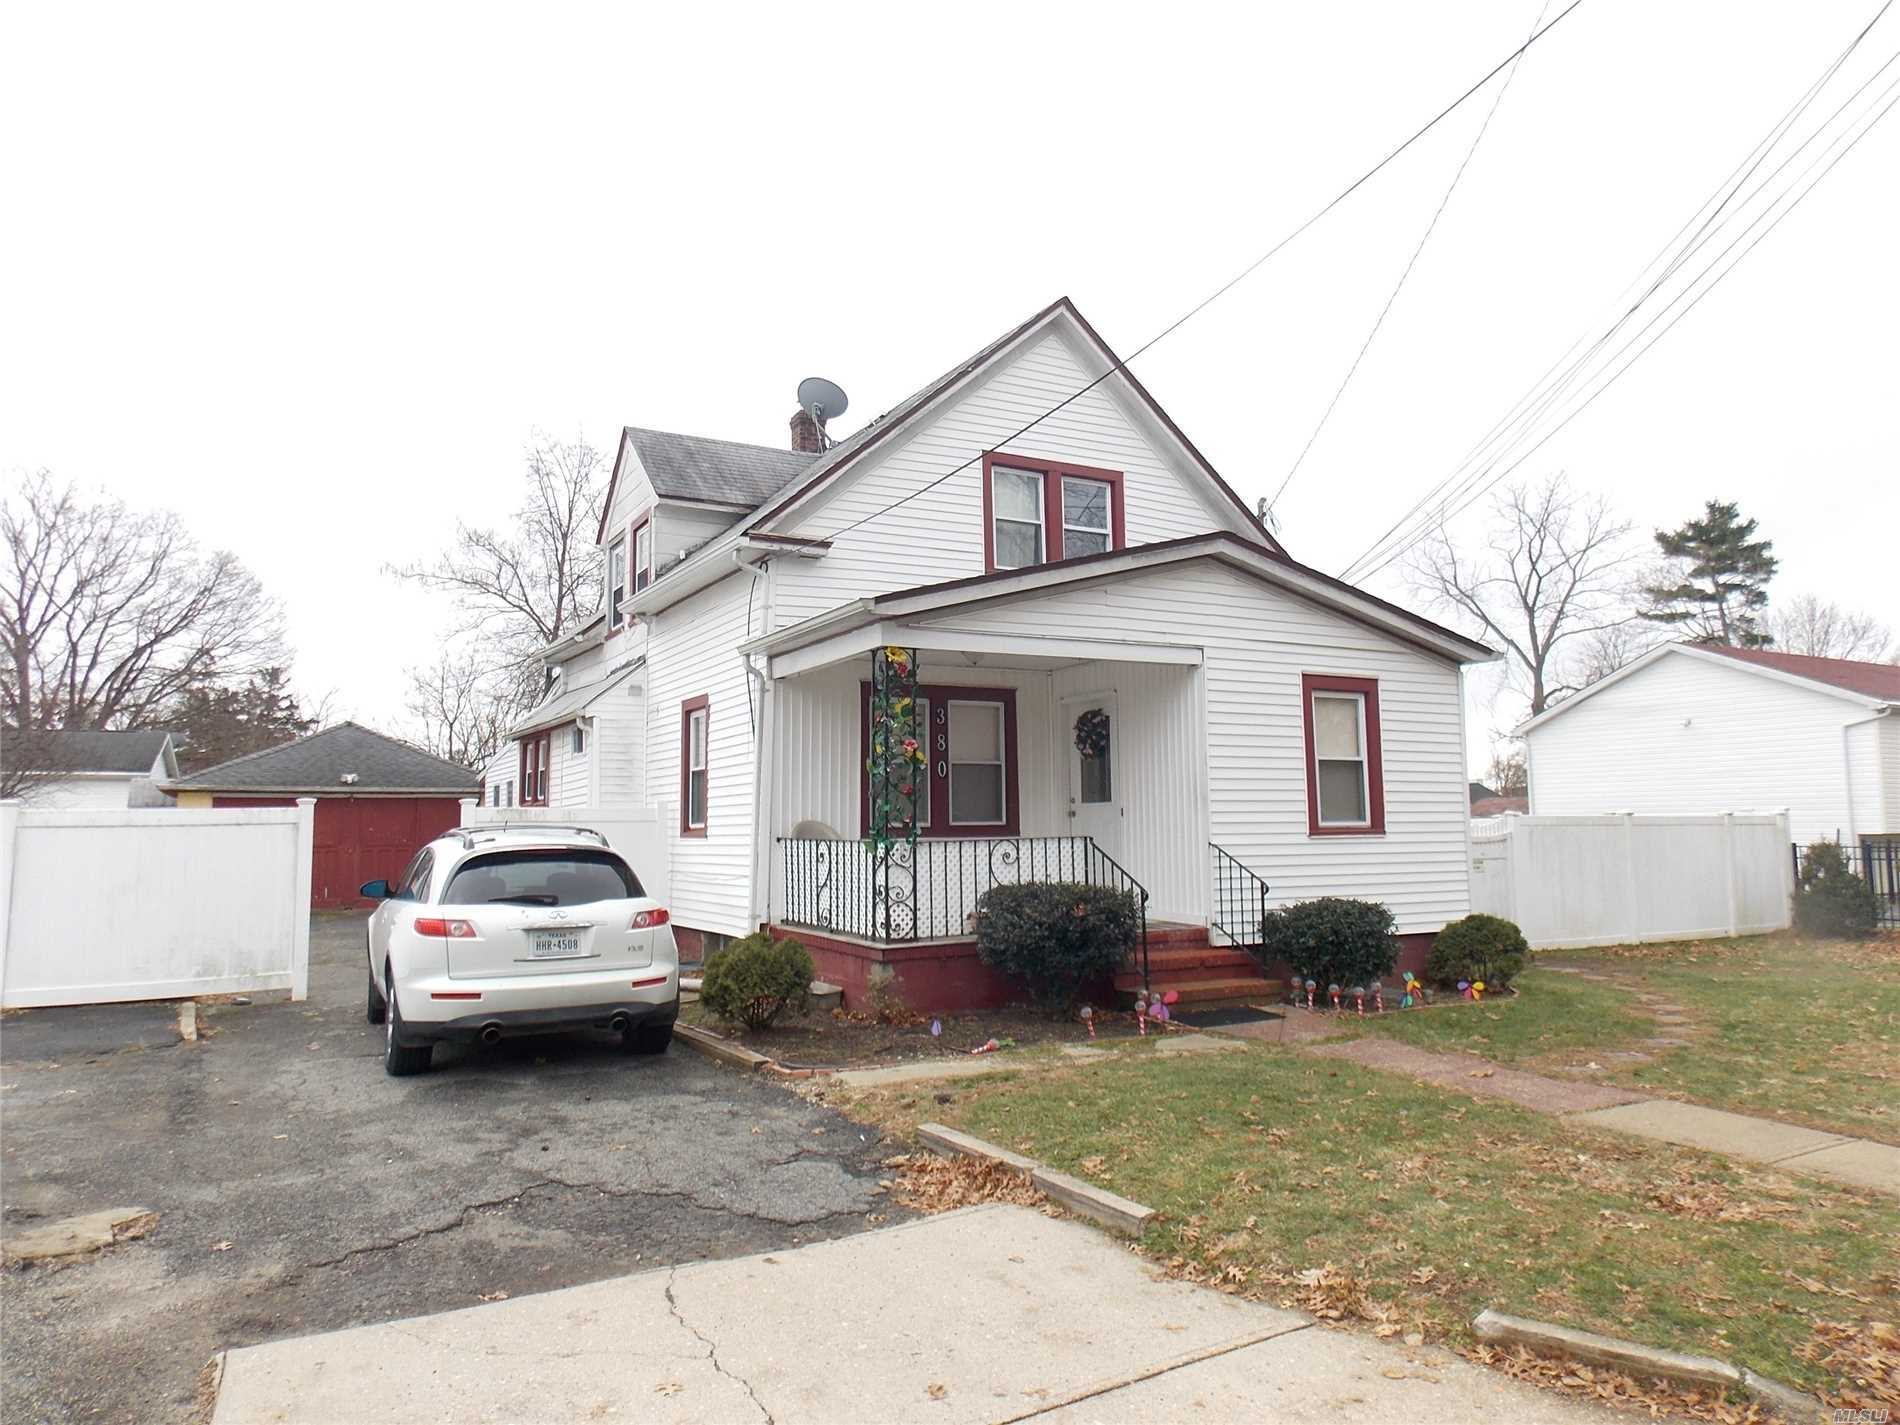 House with a LOT OF POTENTIAL, Close To Shopping Center.